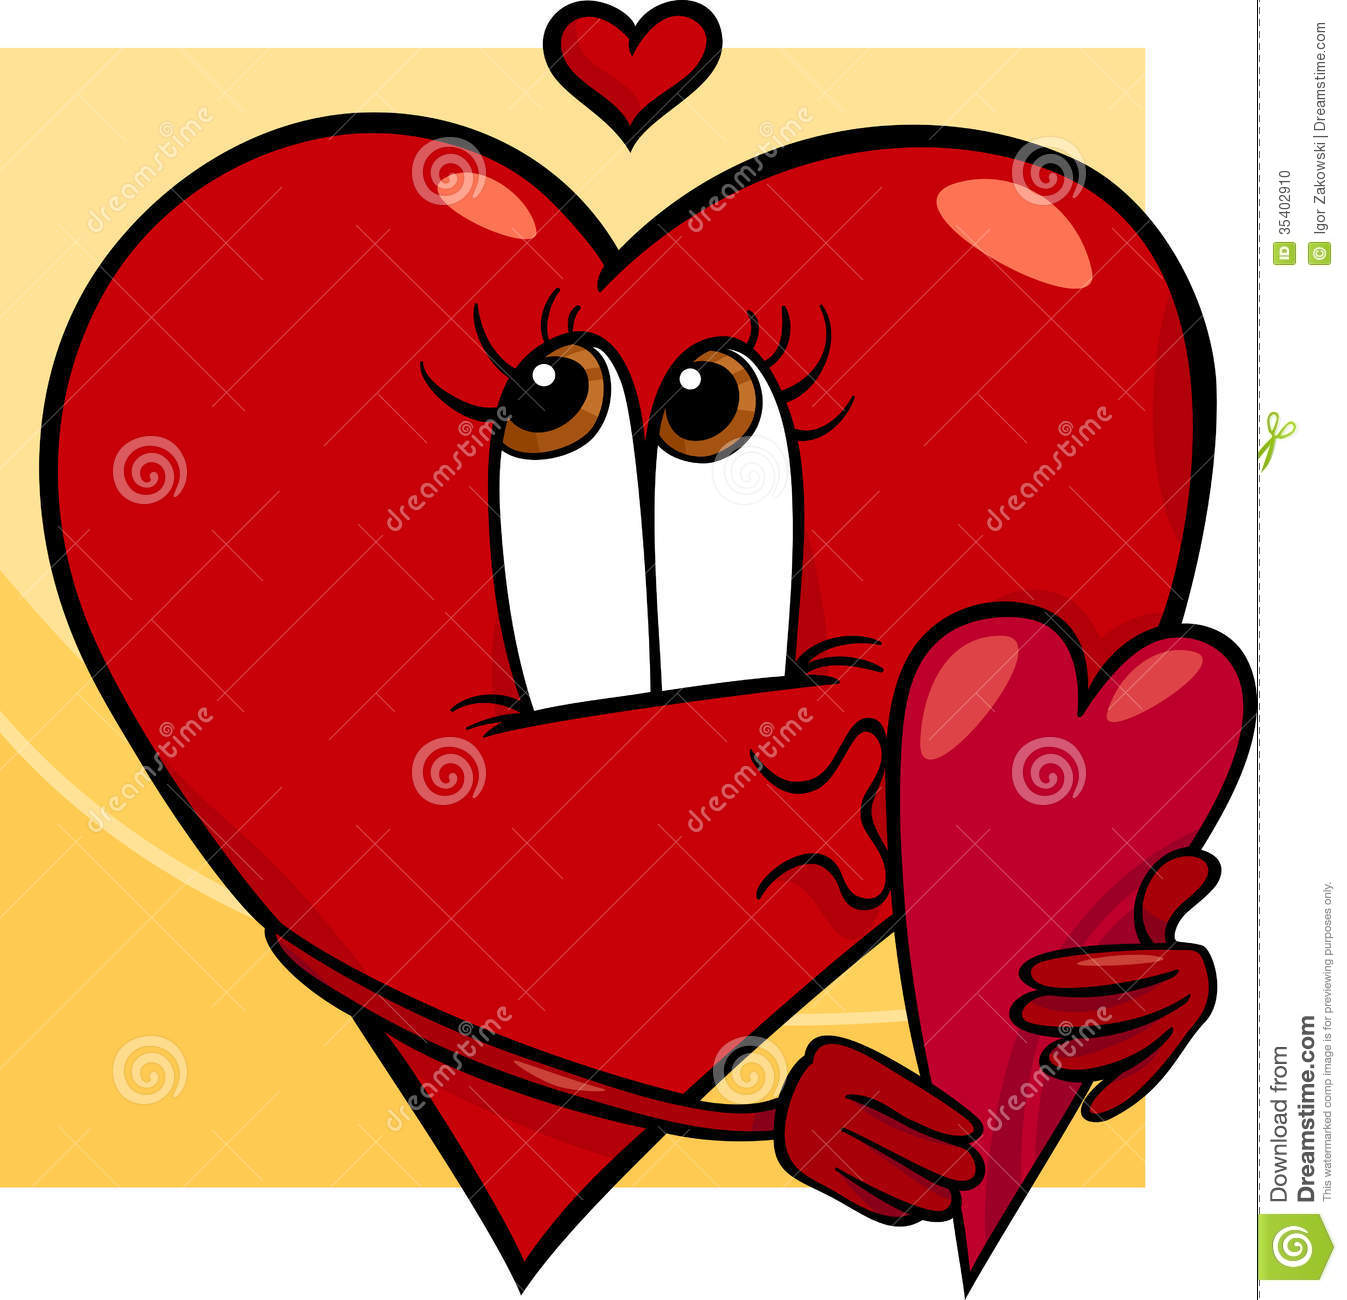 Heart With Valentine Card Cartoon Royalty Free Photo Image – Cartoon Valentine Cards